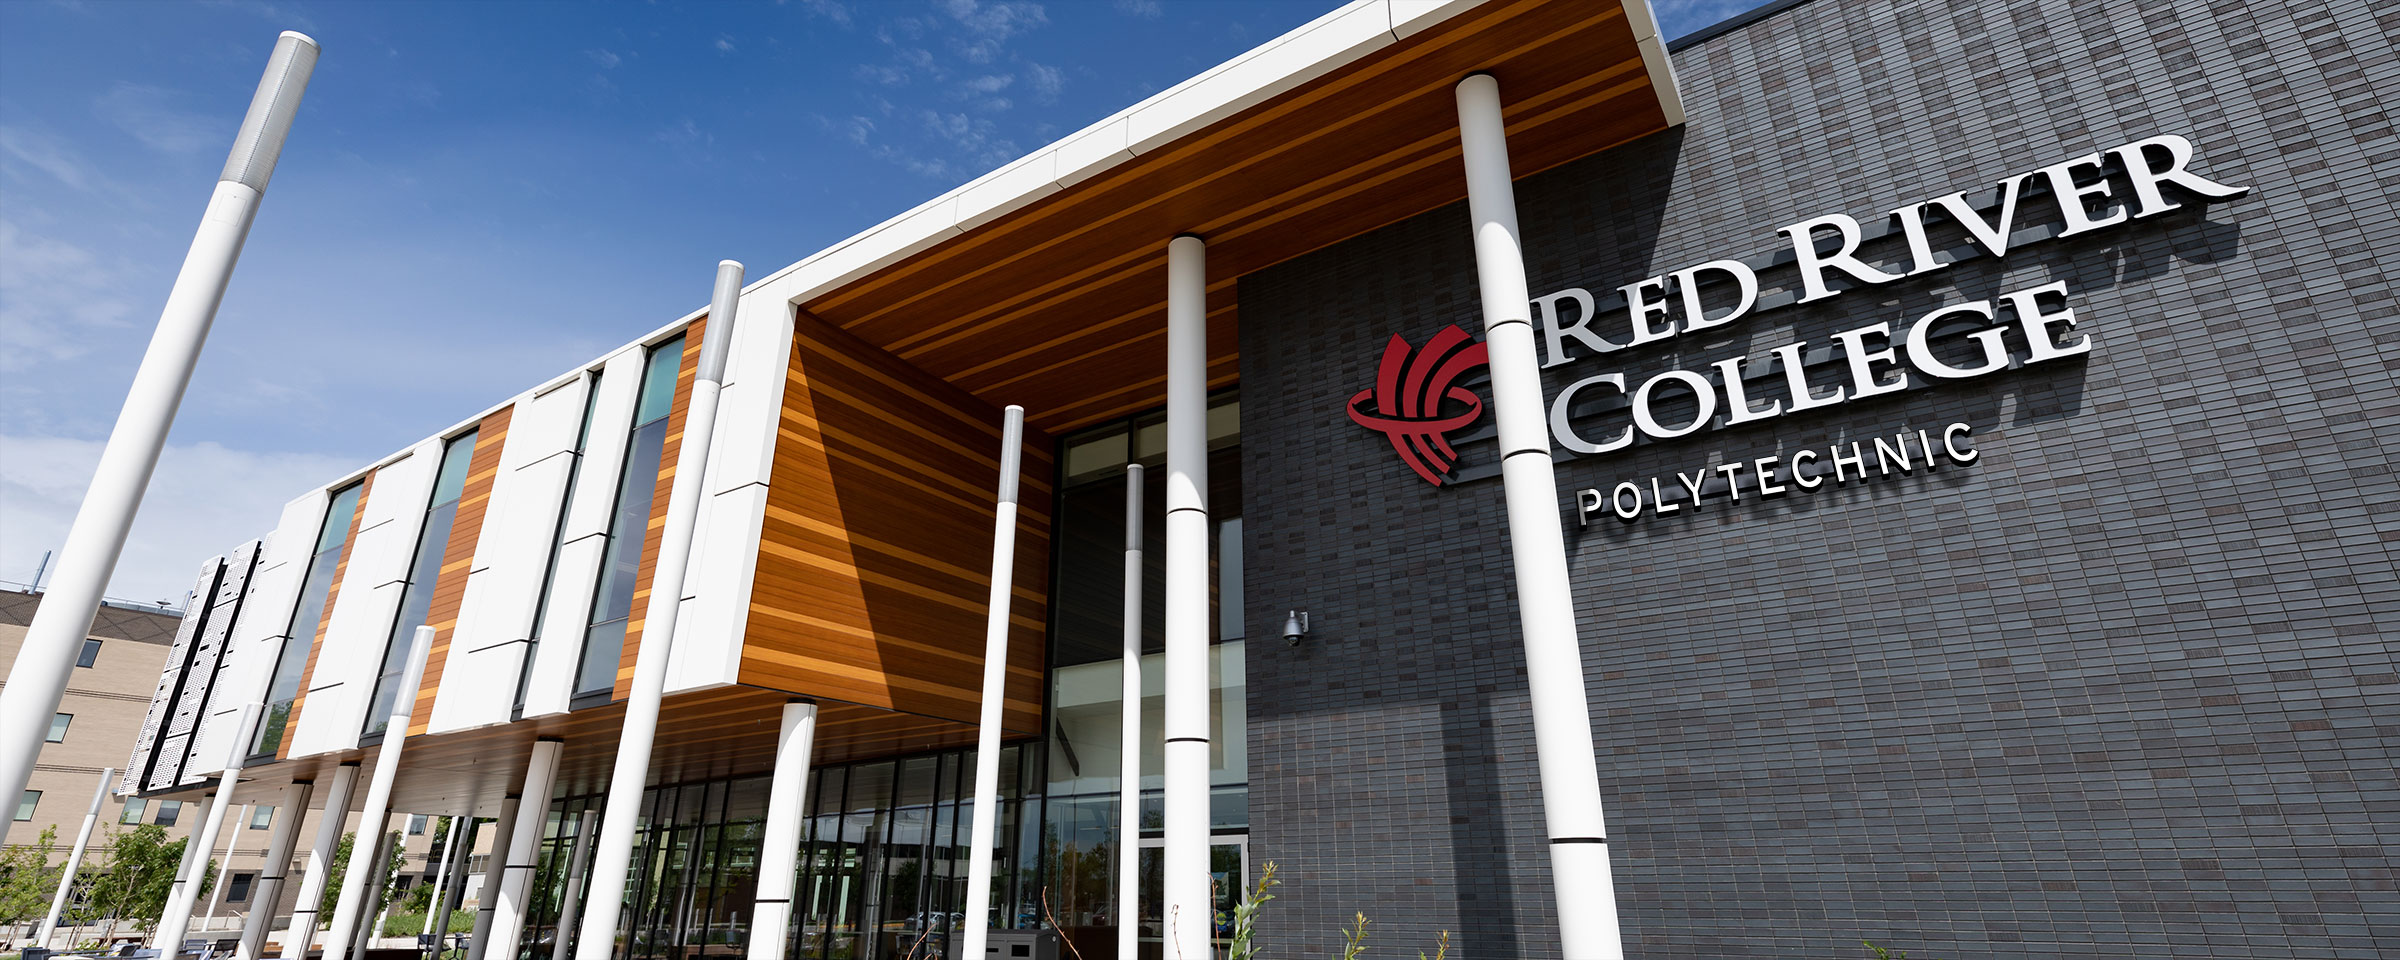 Red River College Polytechnic sign